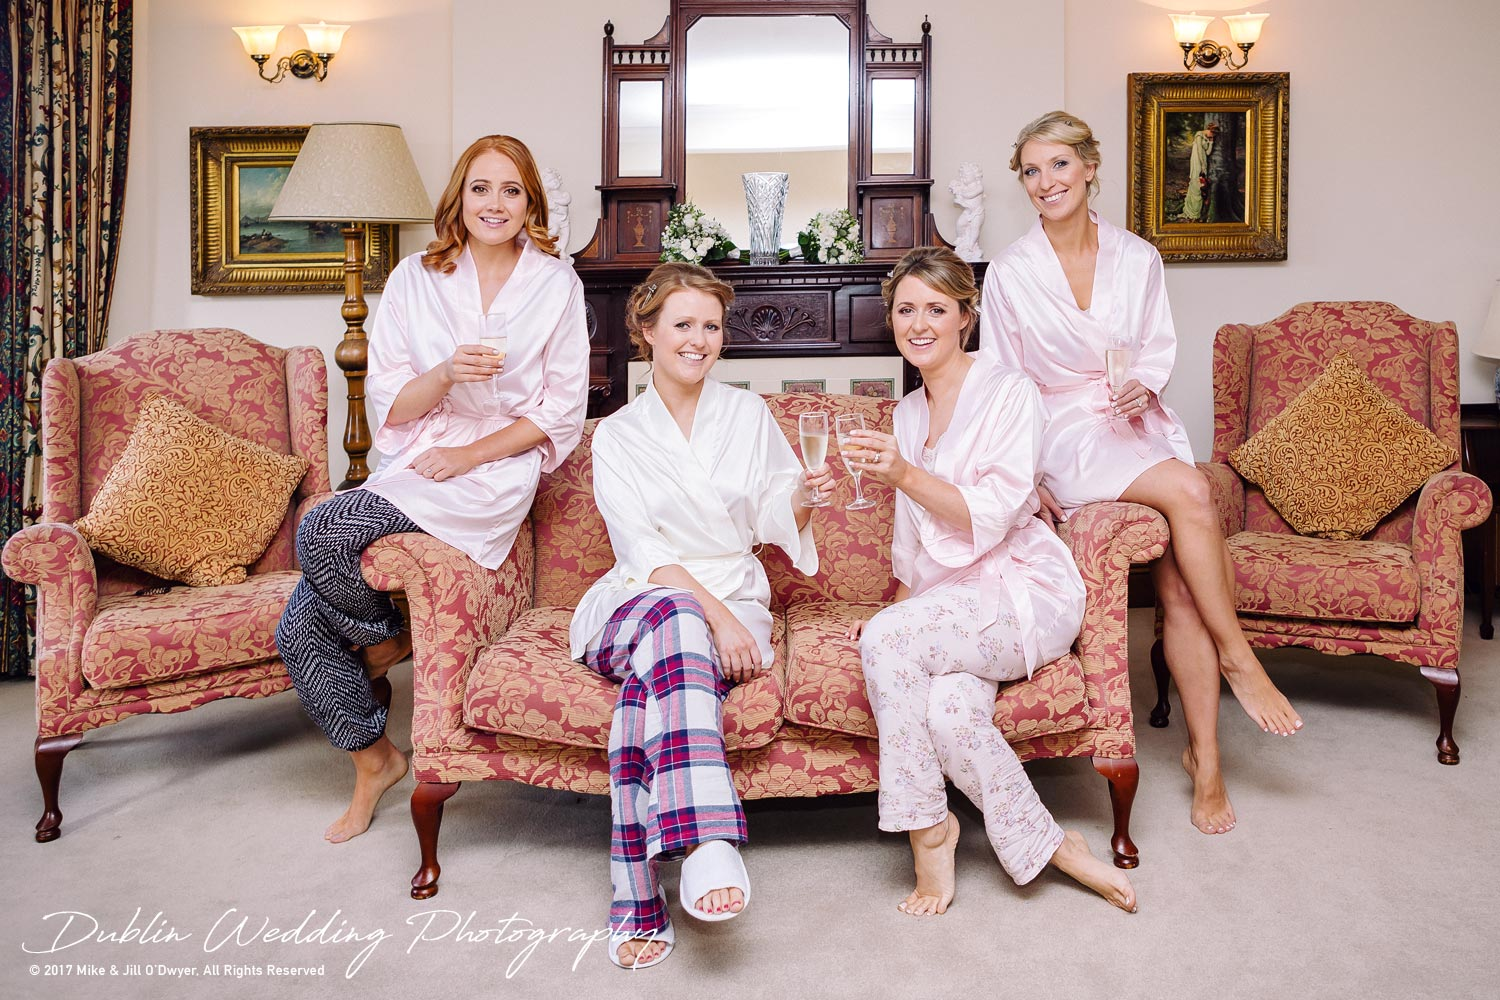 Tinakilly House Wedding Photographer: Bride & Bridesmaids and Morning Champagne